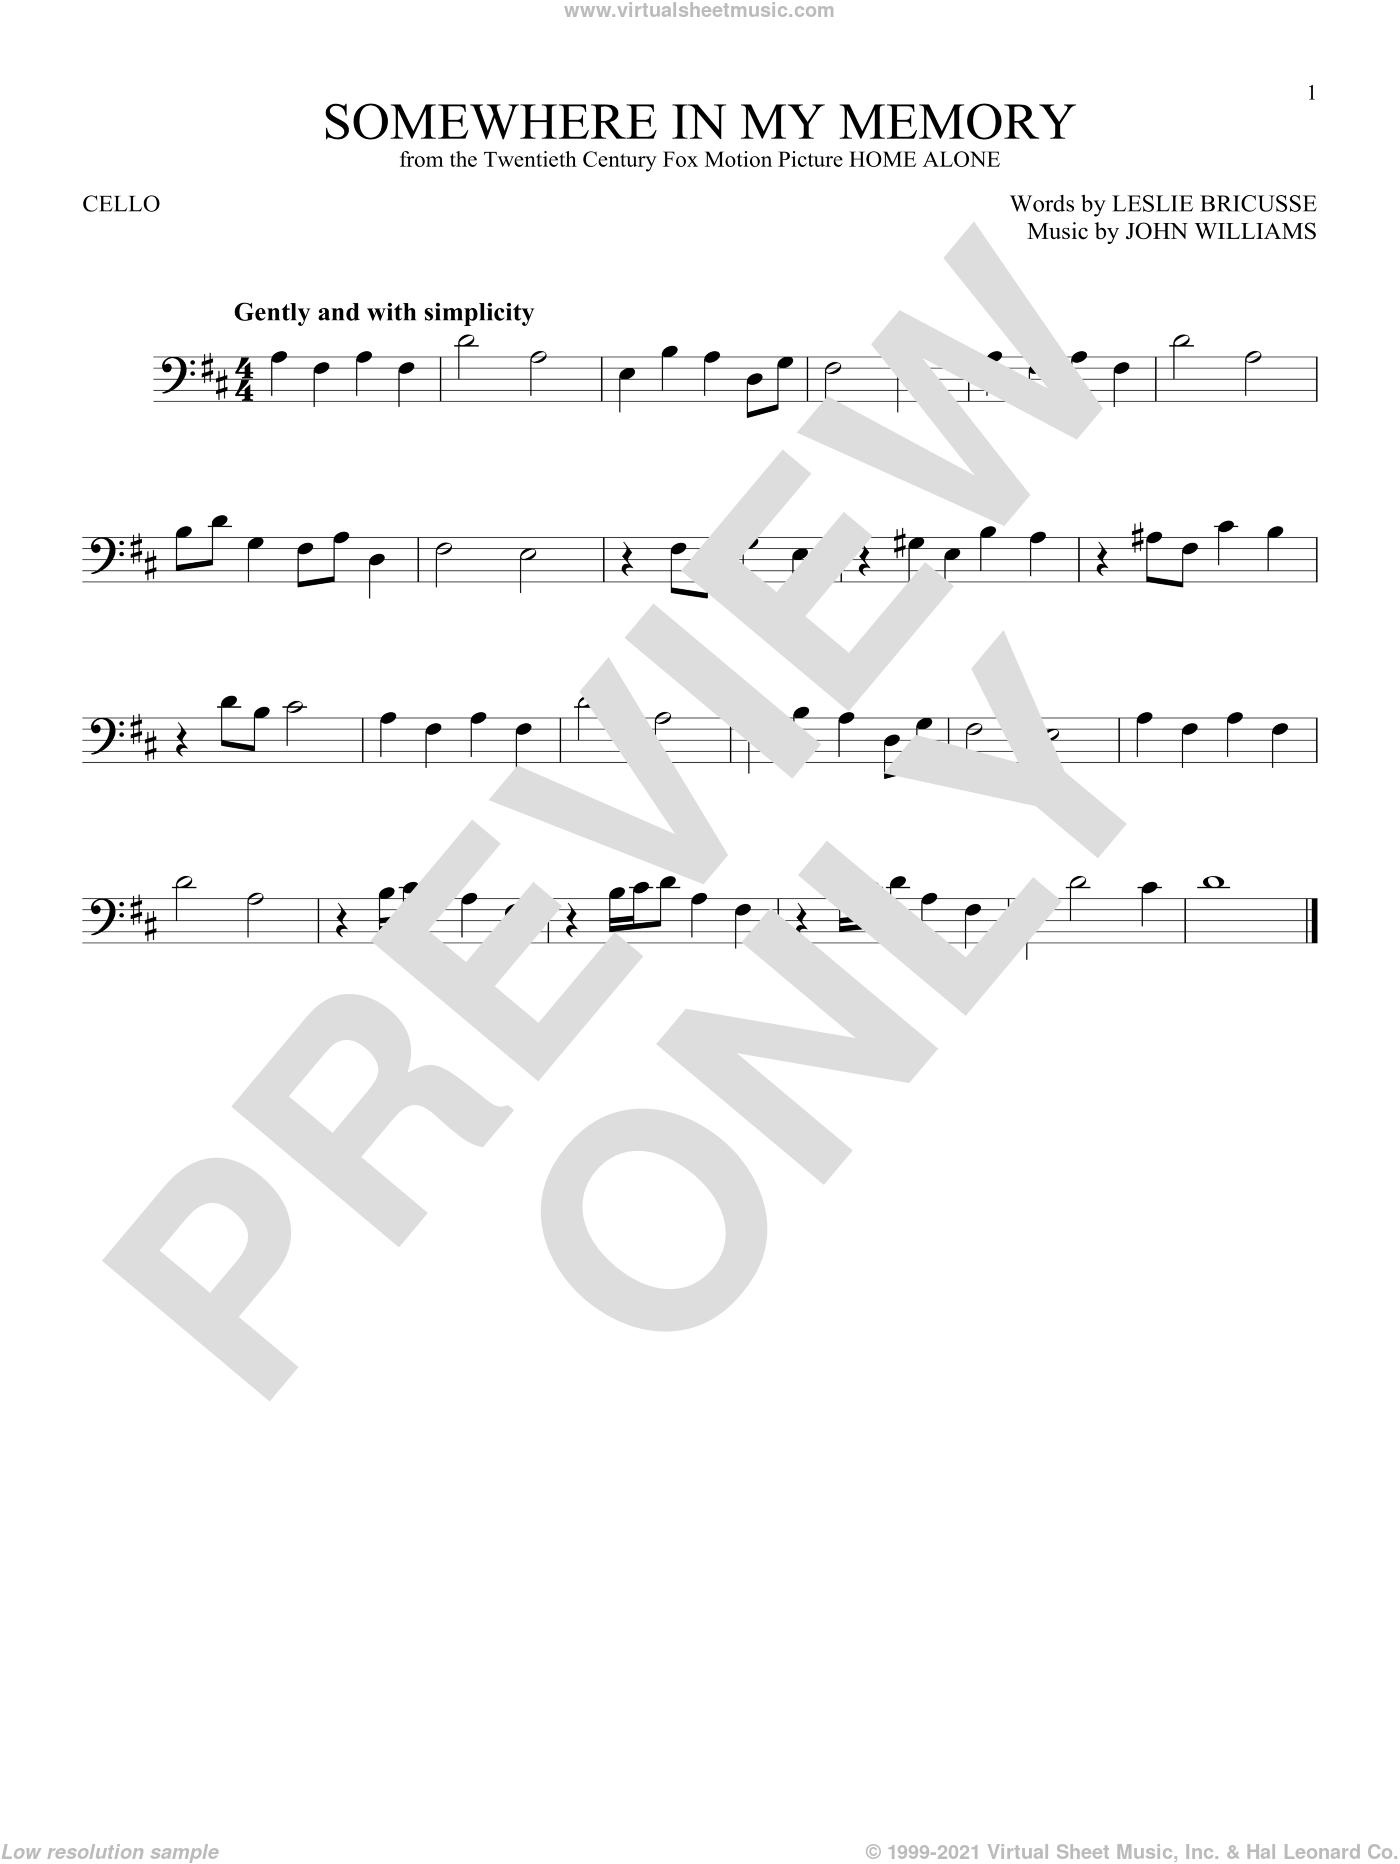 Somewhere In My Memory sheet music for cello solo by John Williams and Leslie Bricusse, intermediate skill level